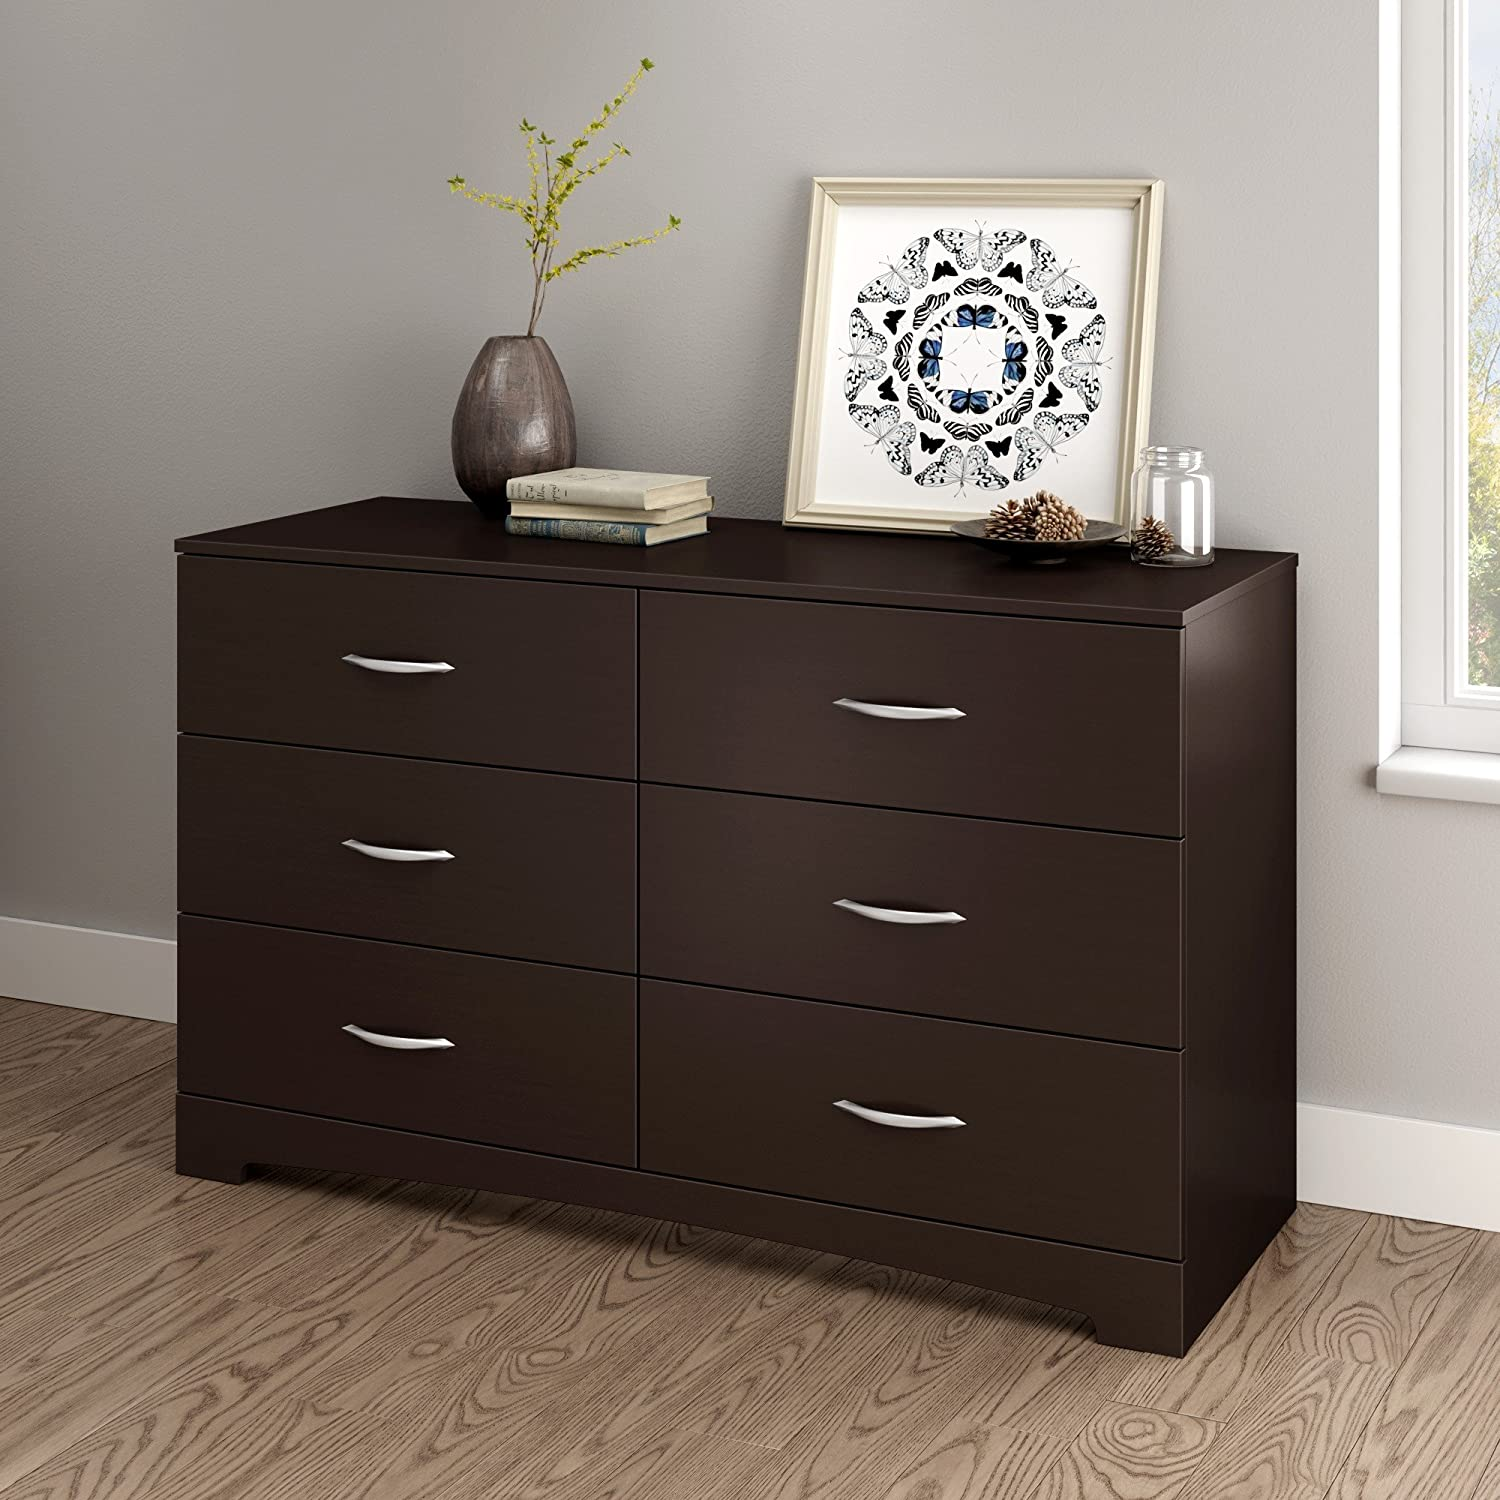 6-Drawer Triple Dresser Chocolate South Shore Furniture Step One Collection